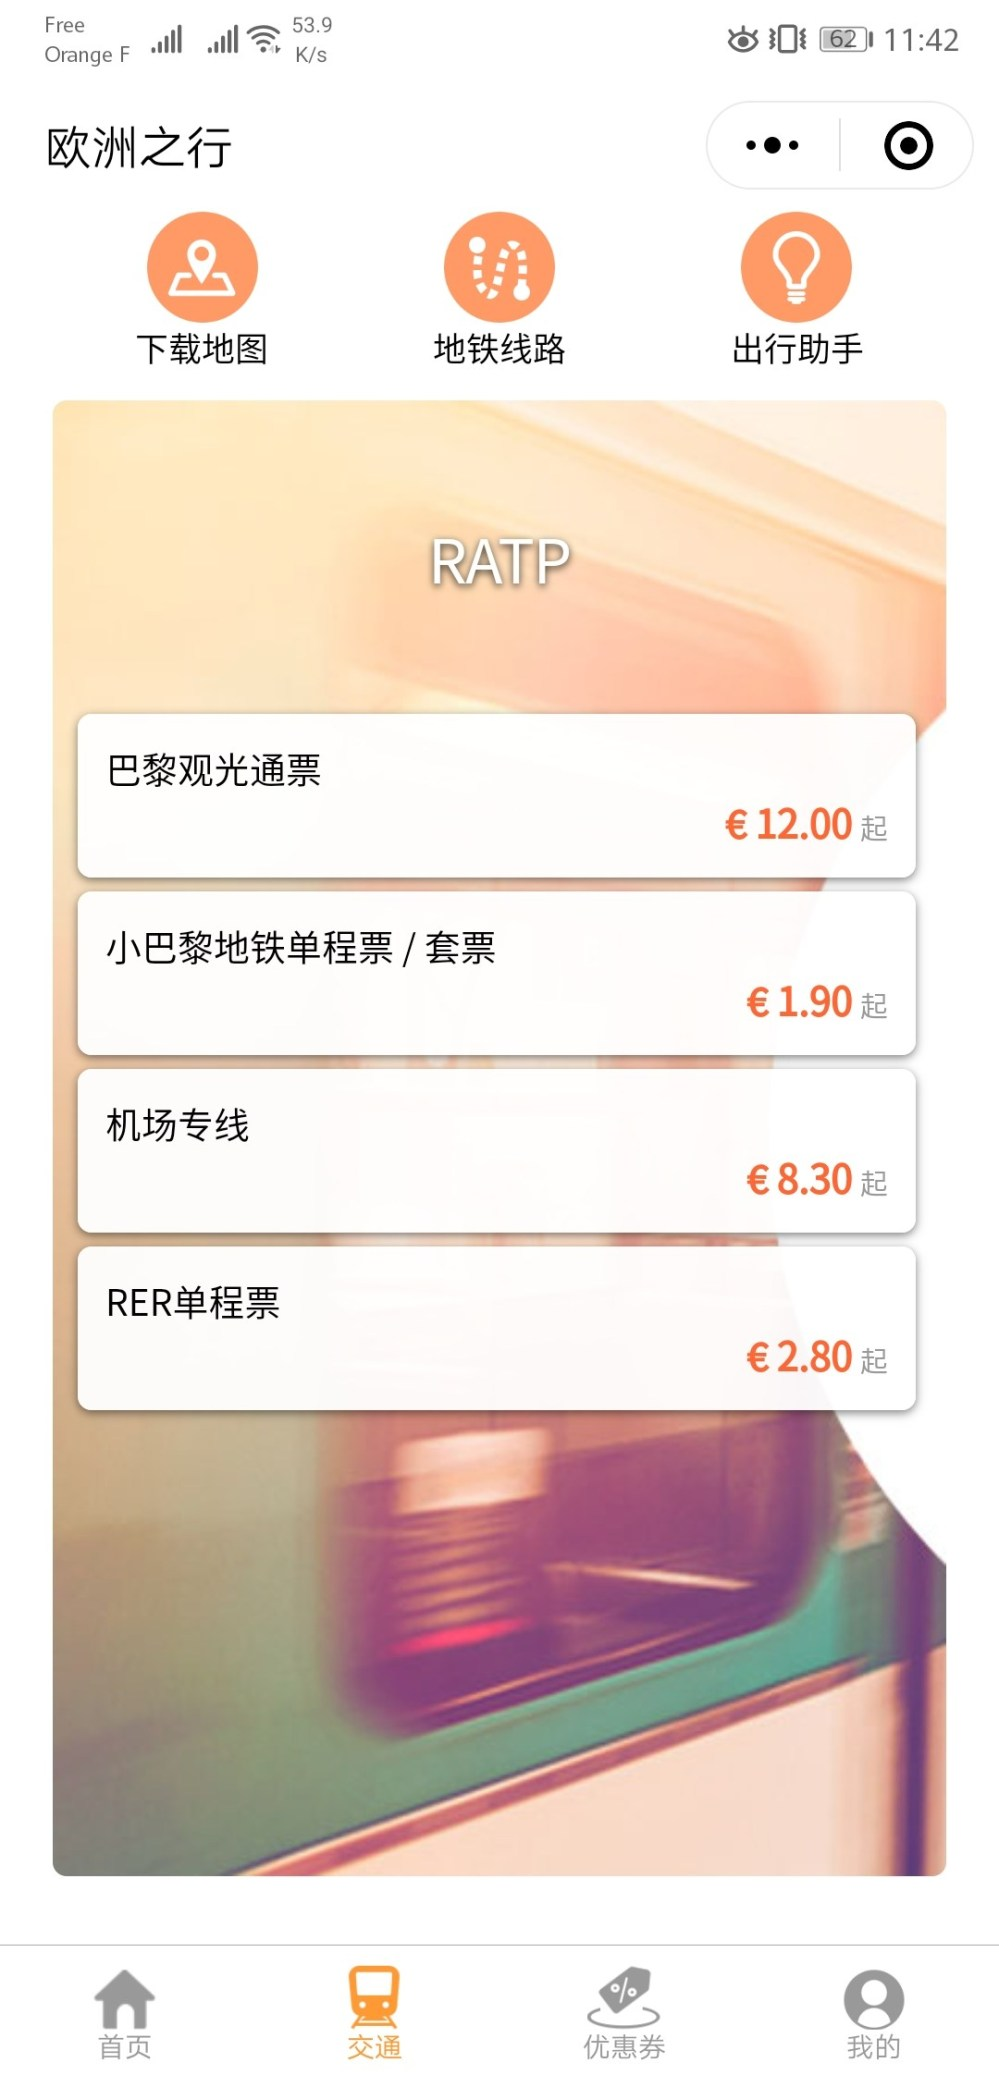 RATP ticketing wechat miniprogram Paris Transports